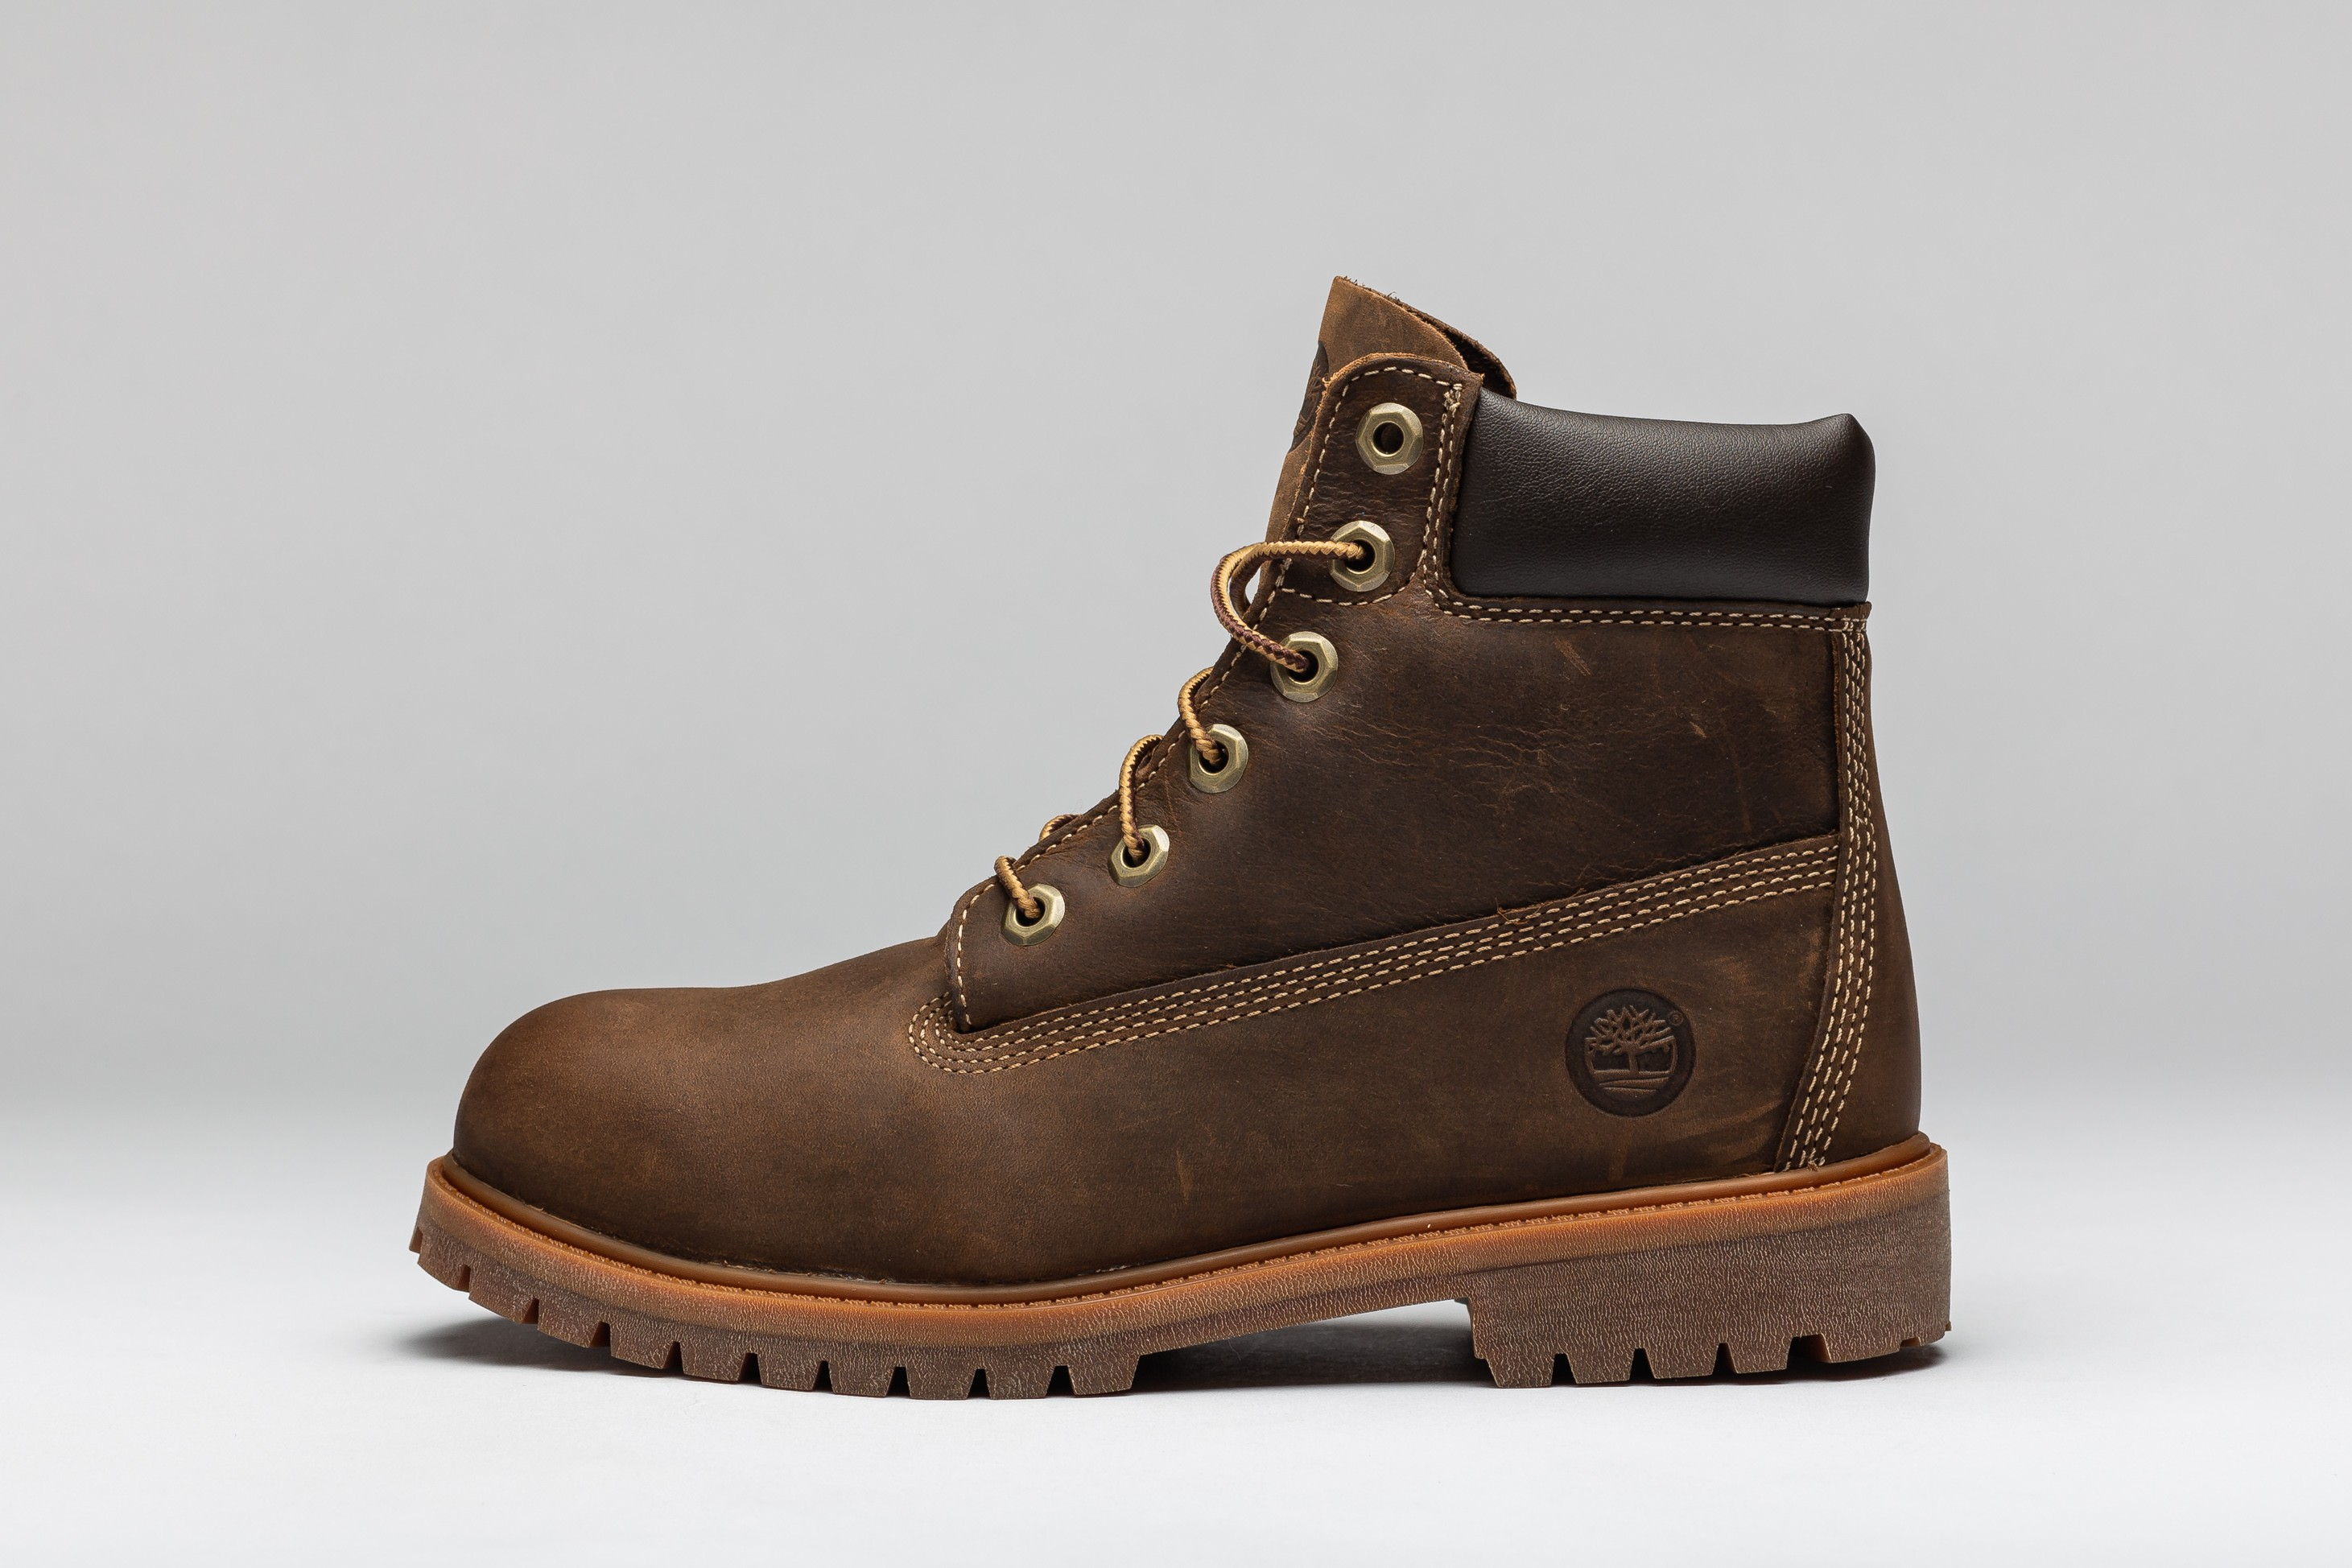 Authentic 6 Inch Boot